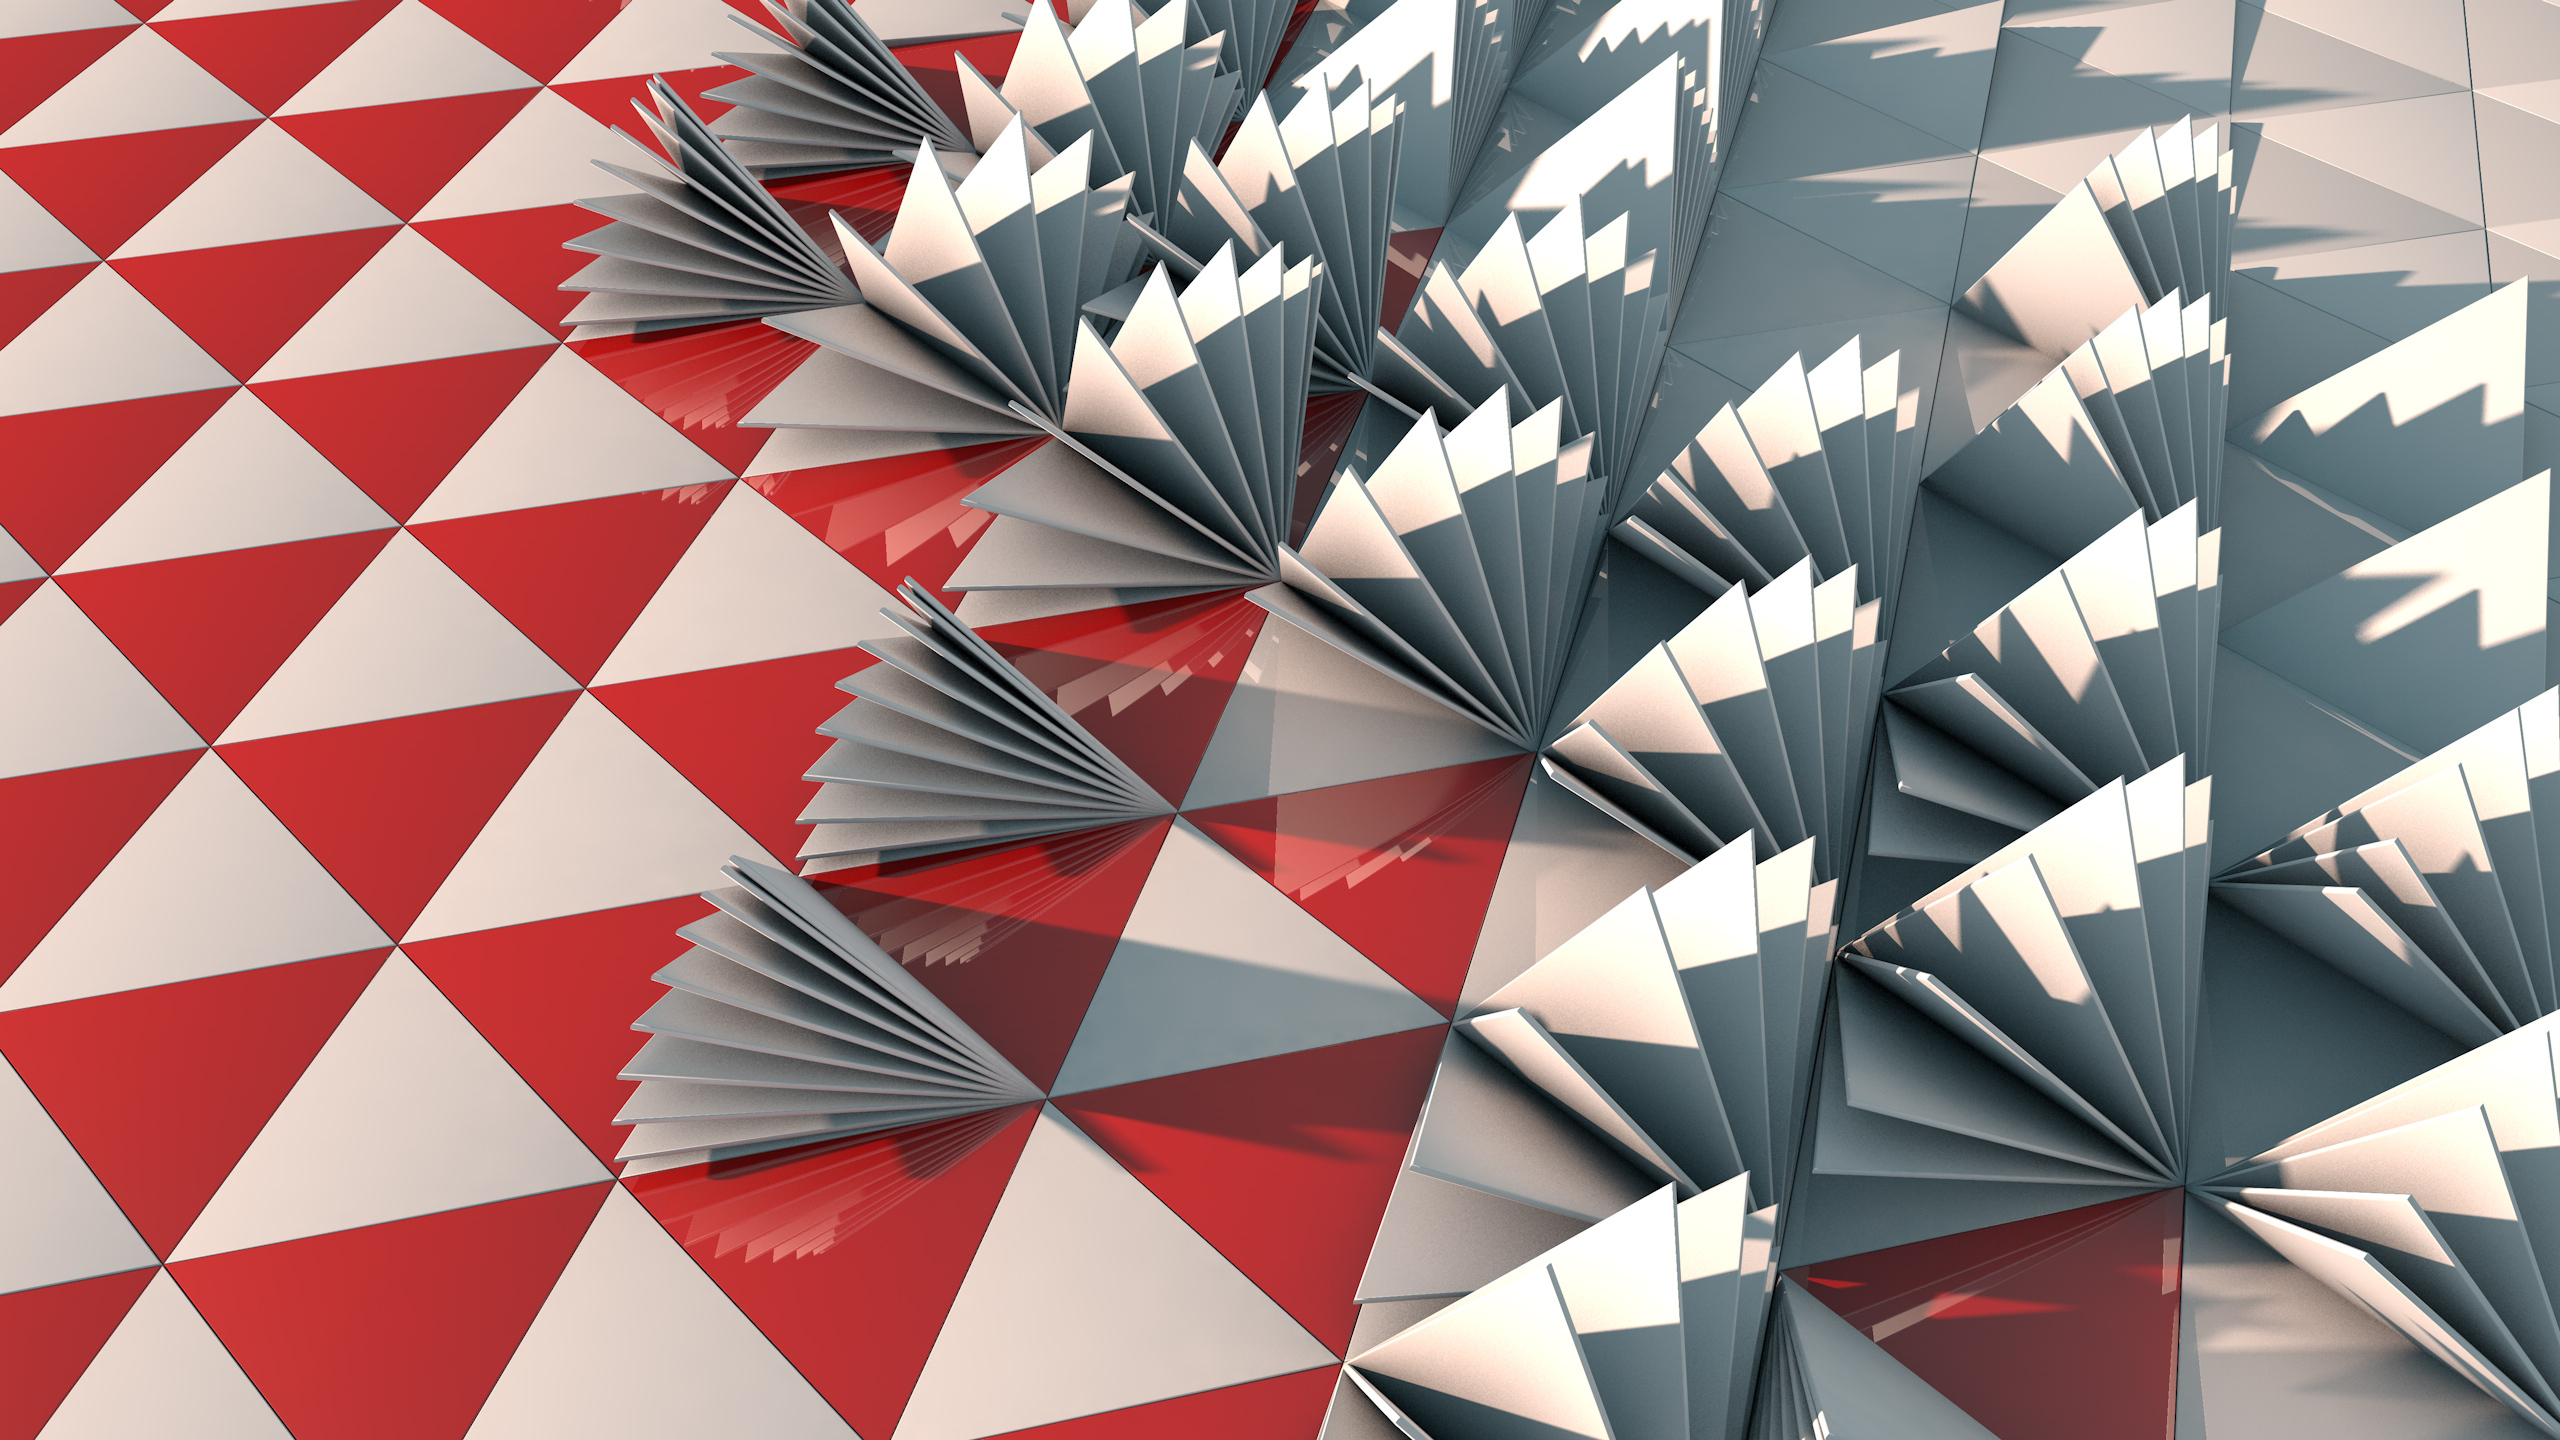 3d-triangle-red-abstract-red-xj.jpg